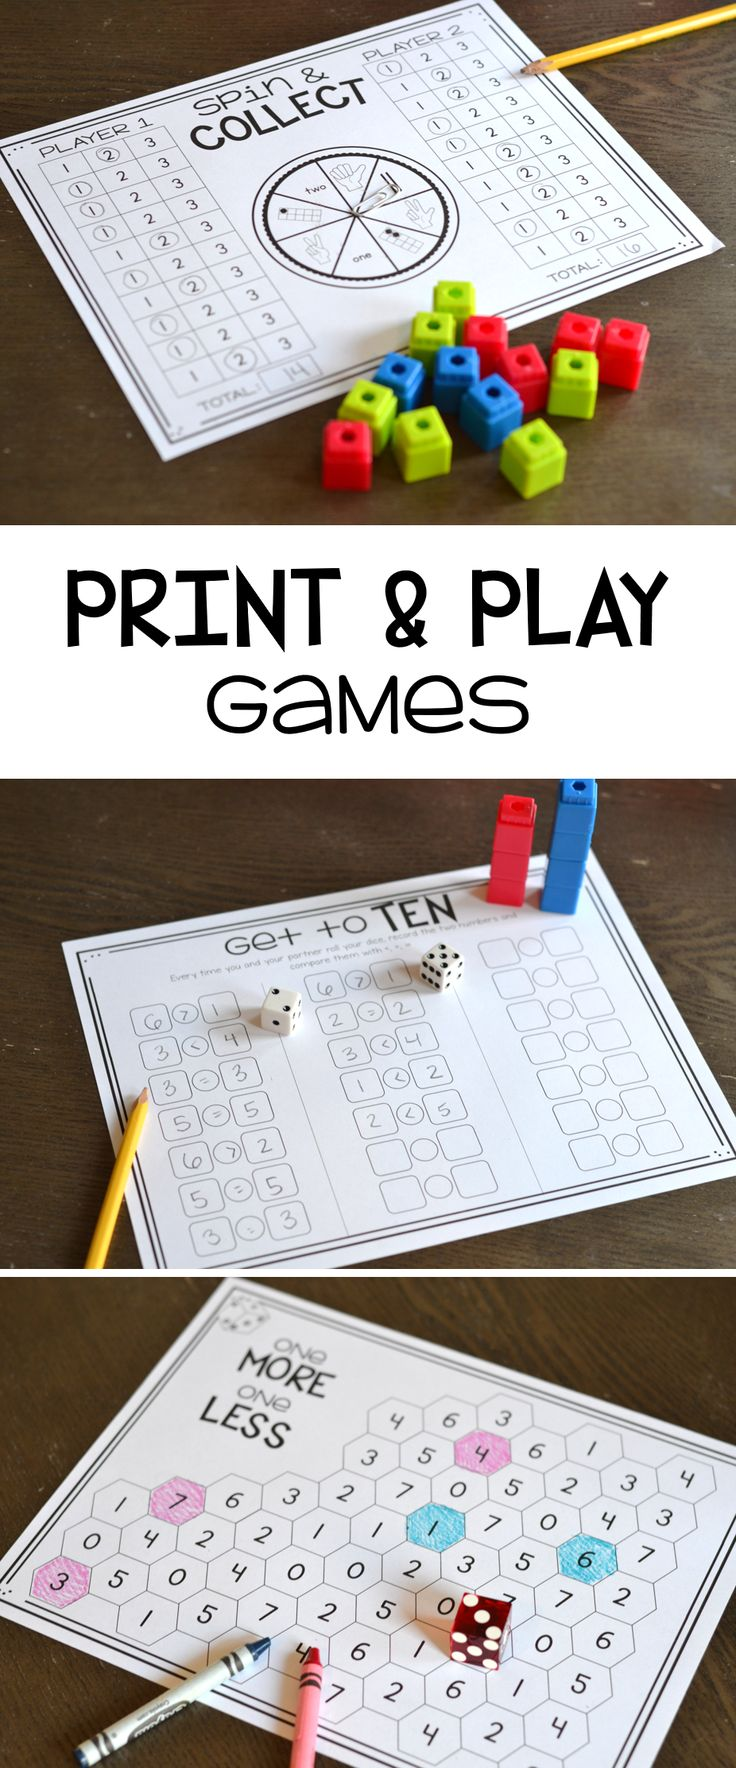 Tons of print and play math games for addition, subtraction, numbers sense…